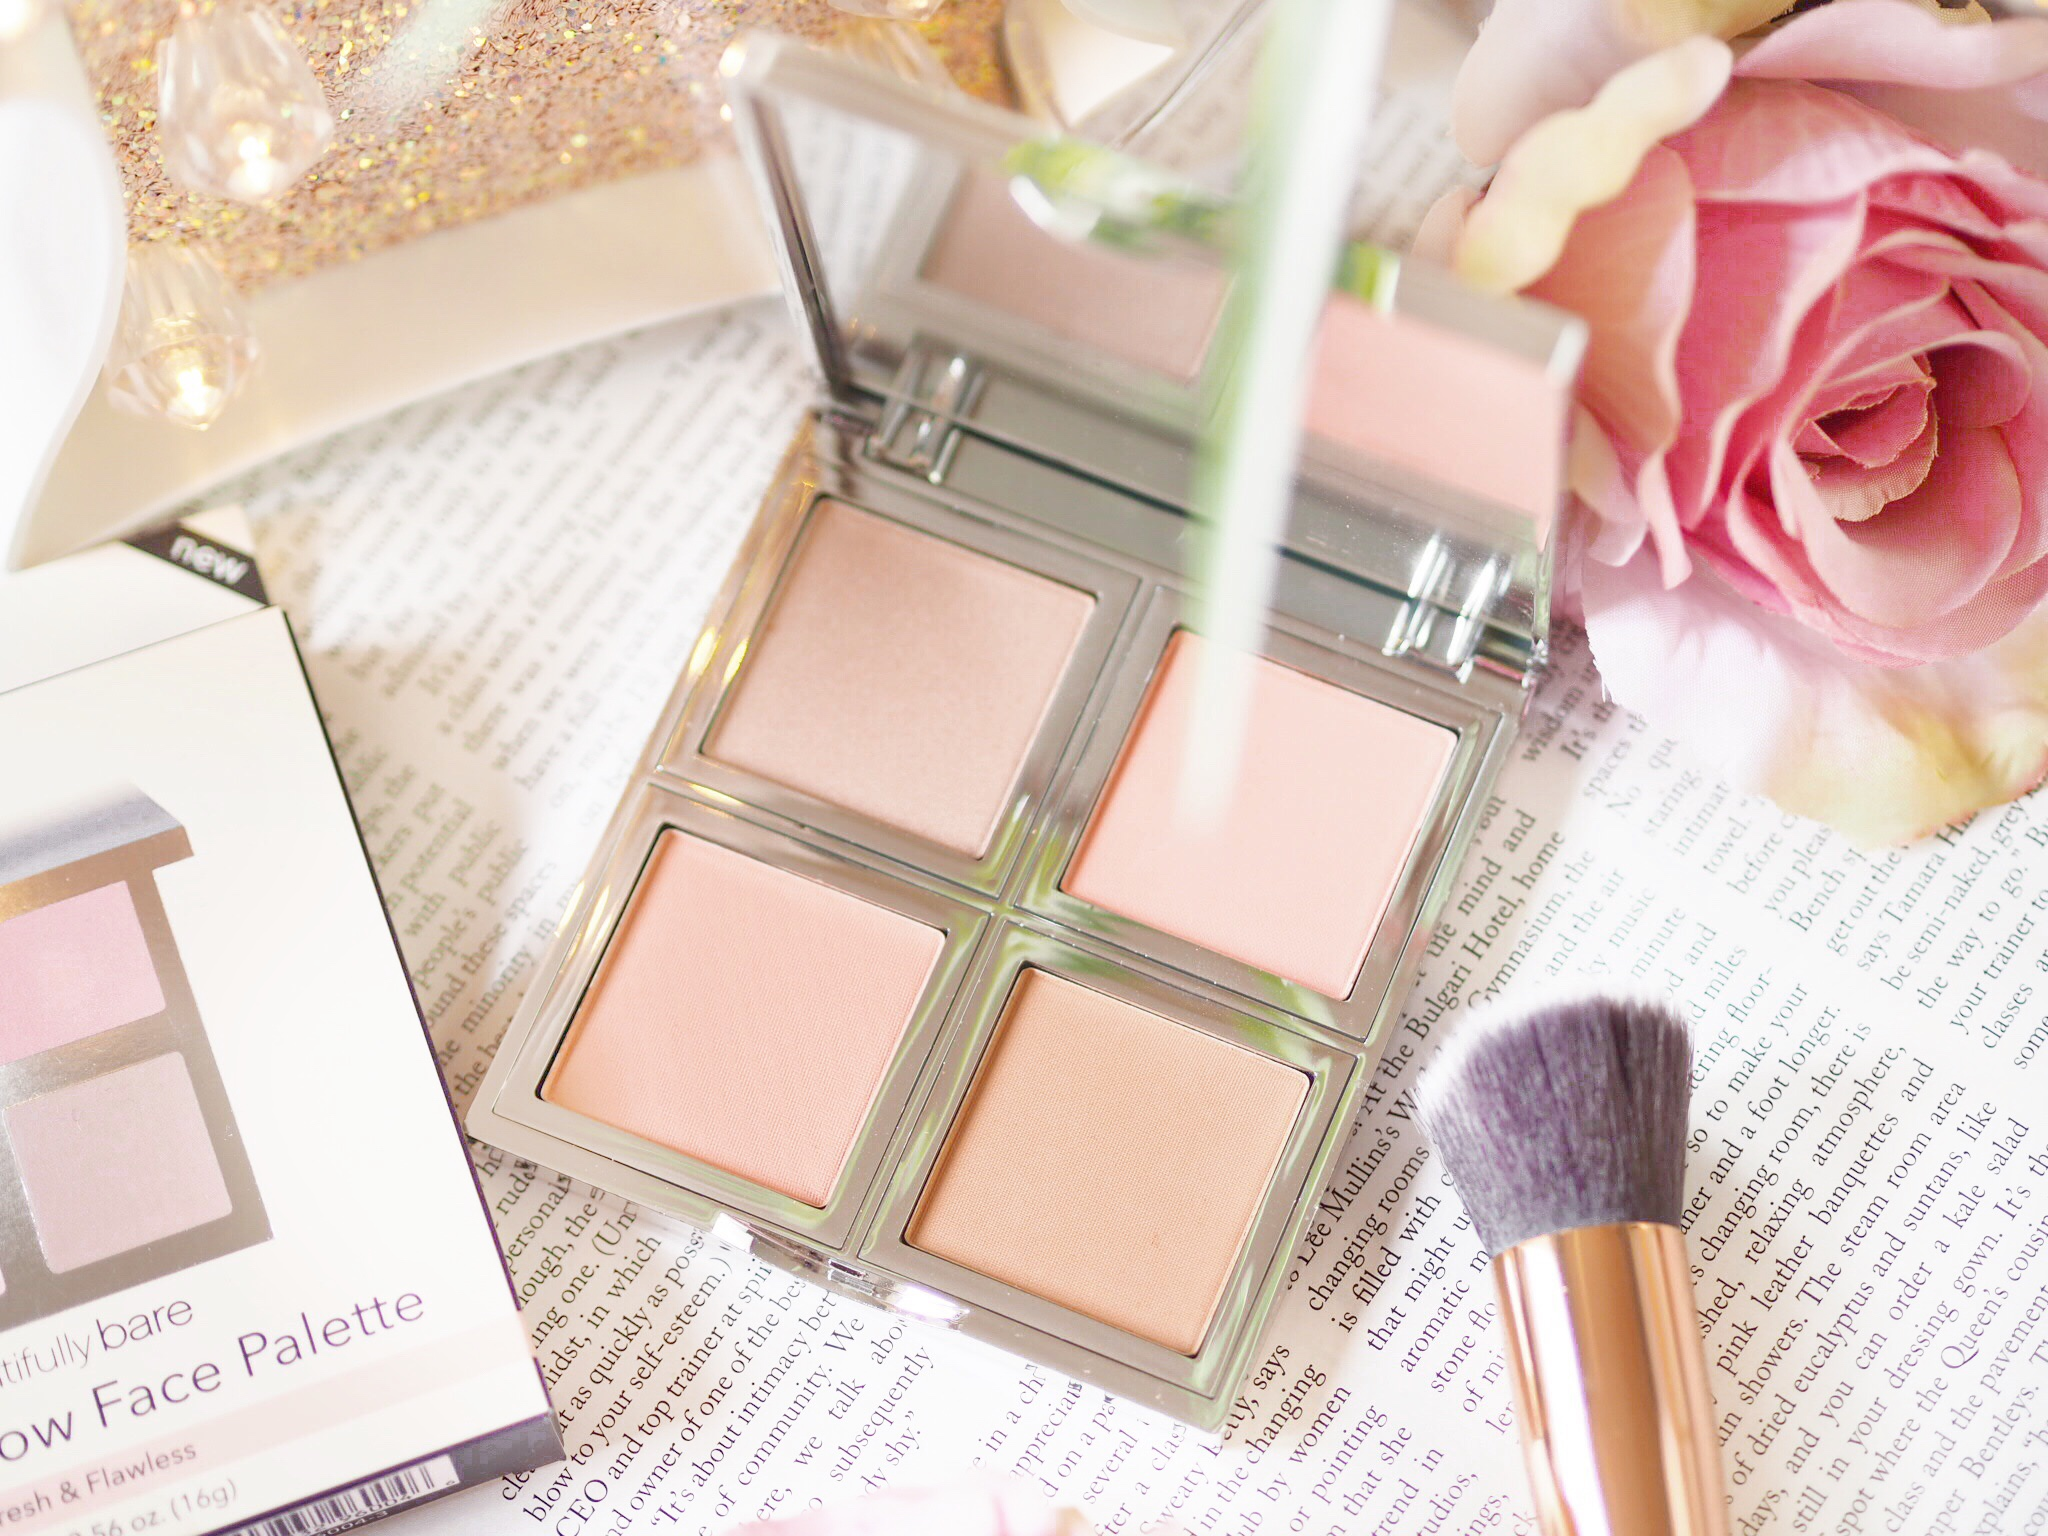 E.L.F Beautifully Bare Natural Glow Face Palette